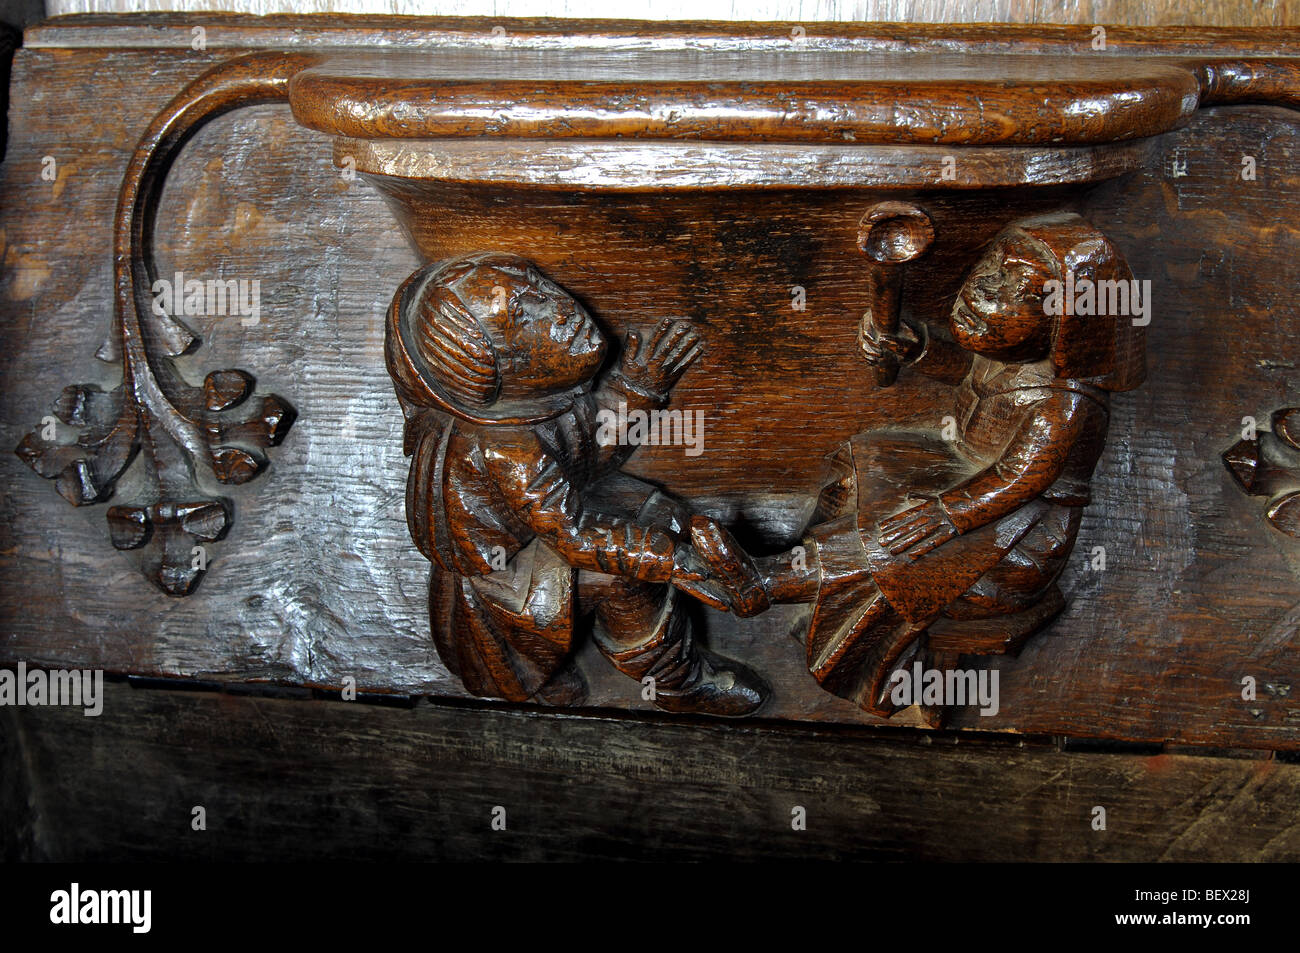 Misericord in St. Mary the Virgin Church, Fairford, Gloucestershire, England, UK - Stock Image